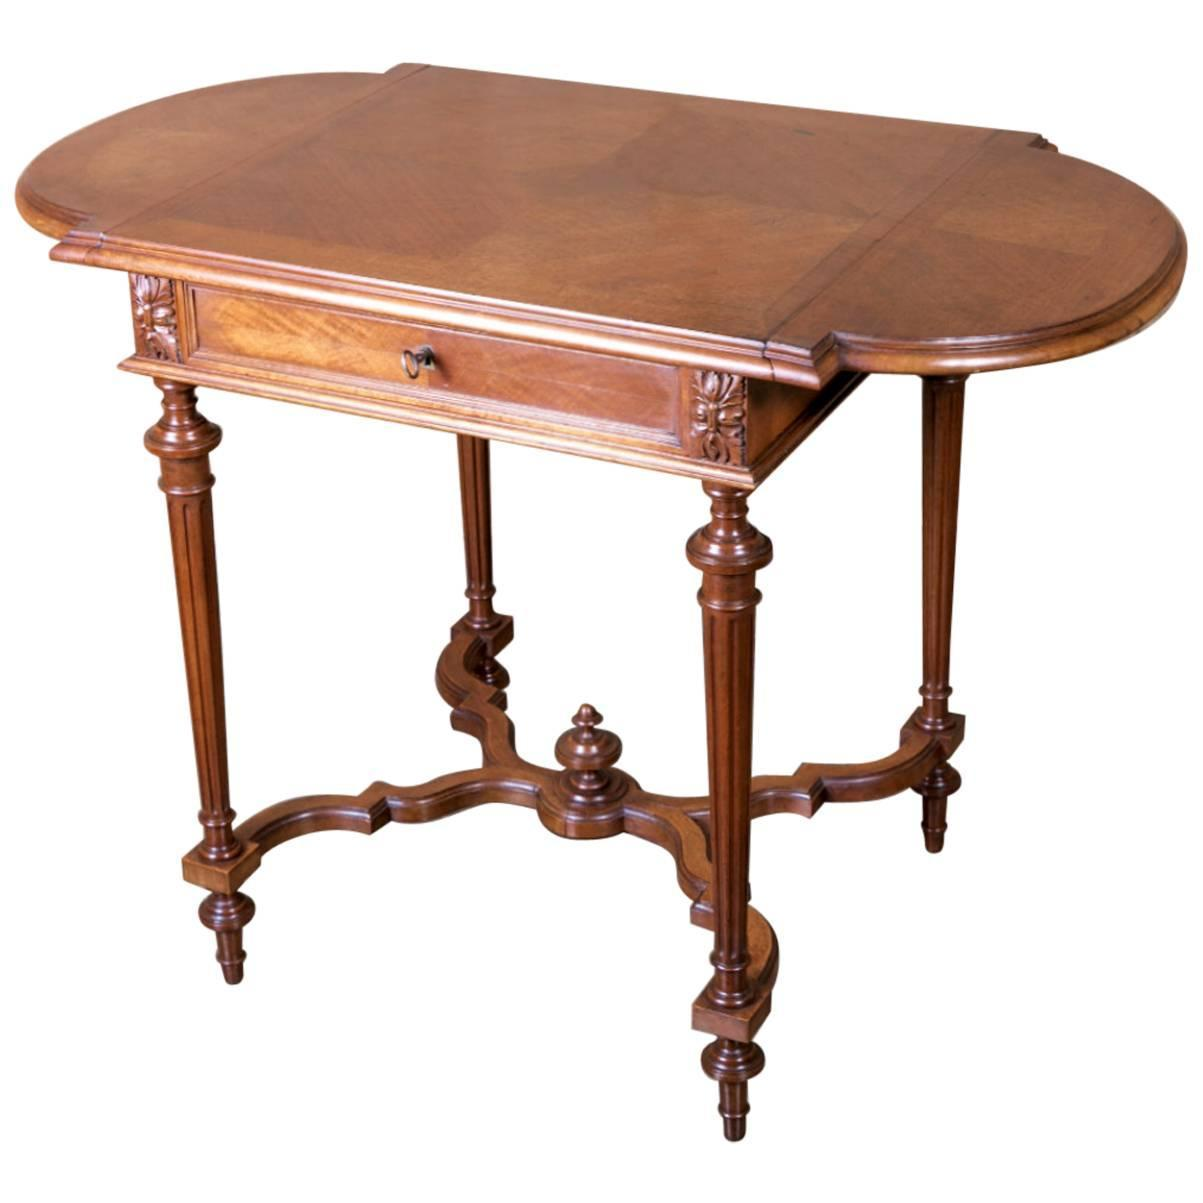 louis xvi style drop leaf side table at 1stdibs. Black Bedroom Furniture Sets. Home Design Ideas